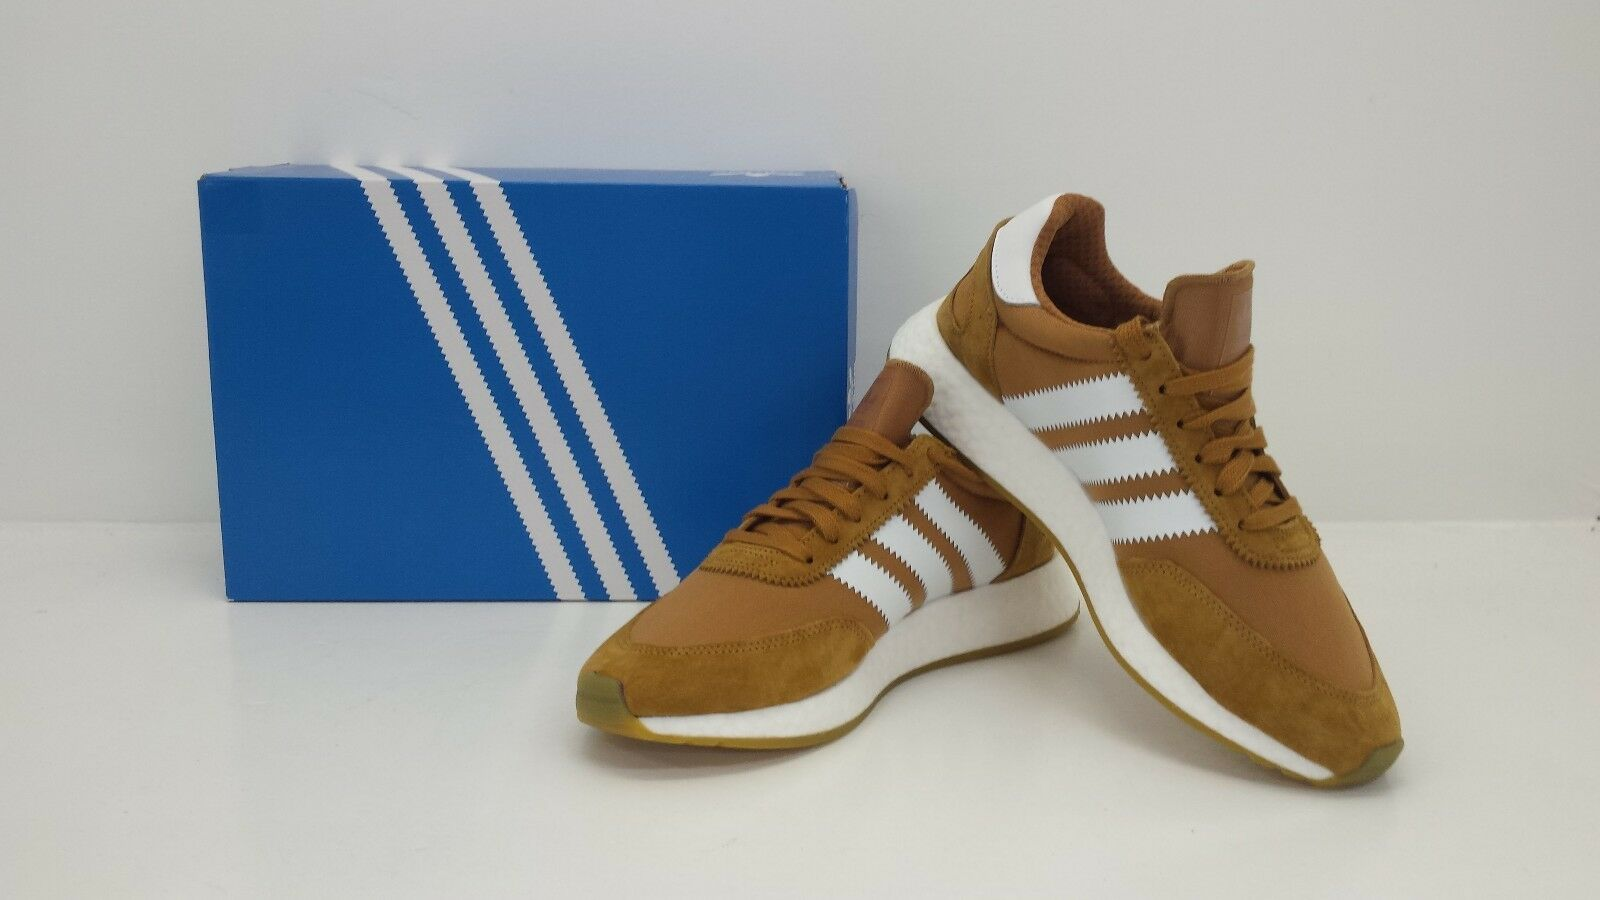 Adidas Originals Mens I-5923 Iniki Mesa/White/Gum CQ2491  - BRAND NEW IN BOX